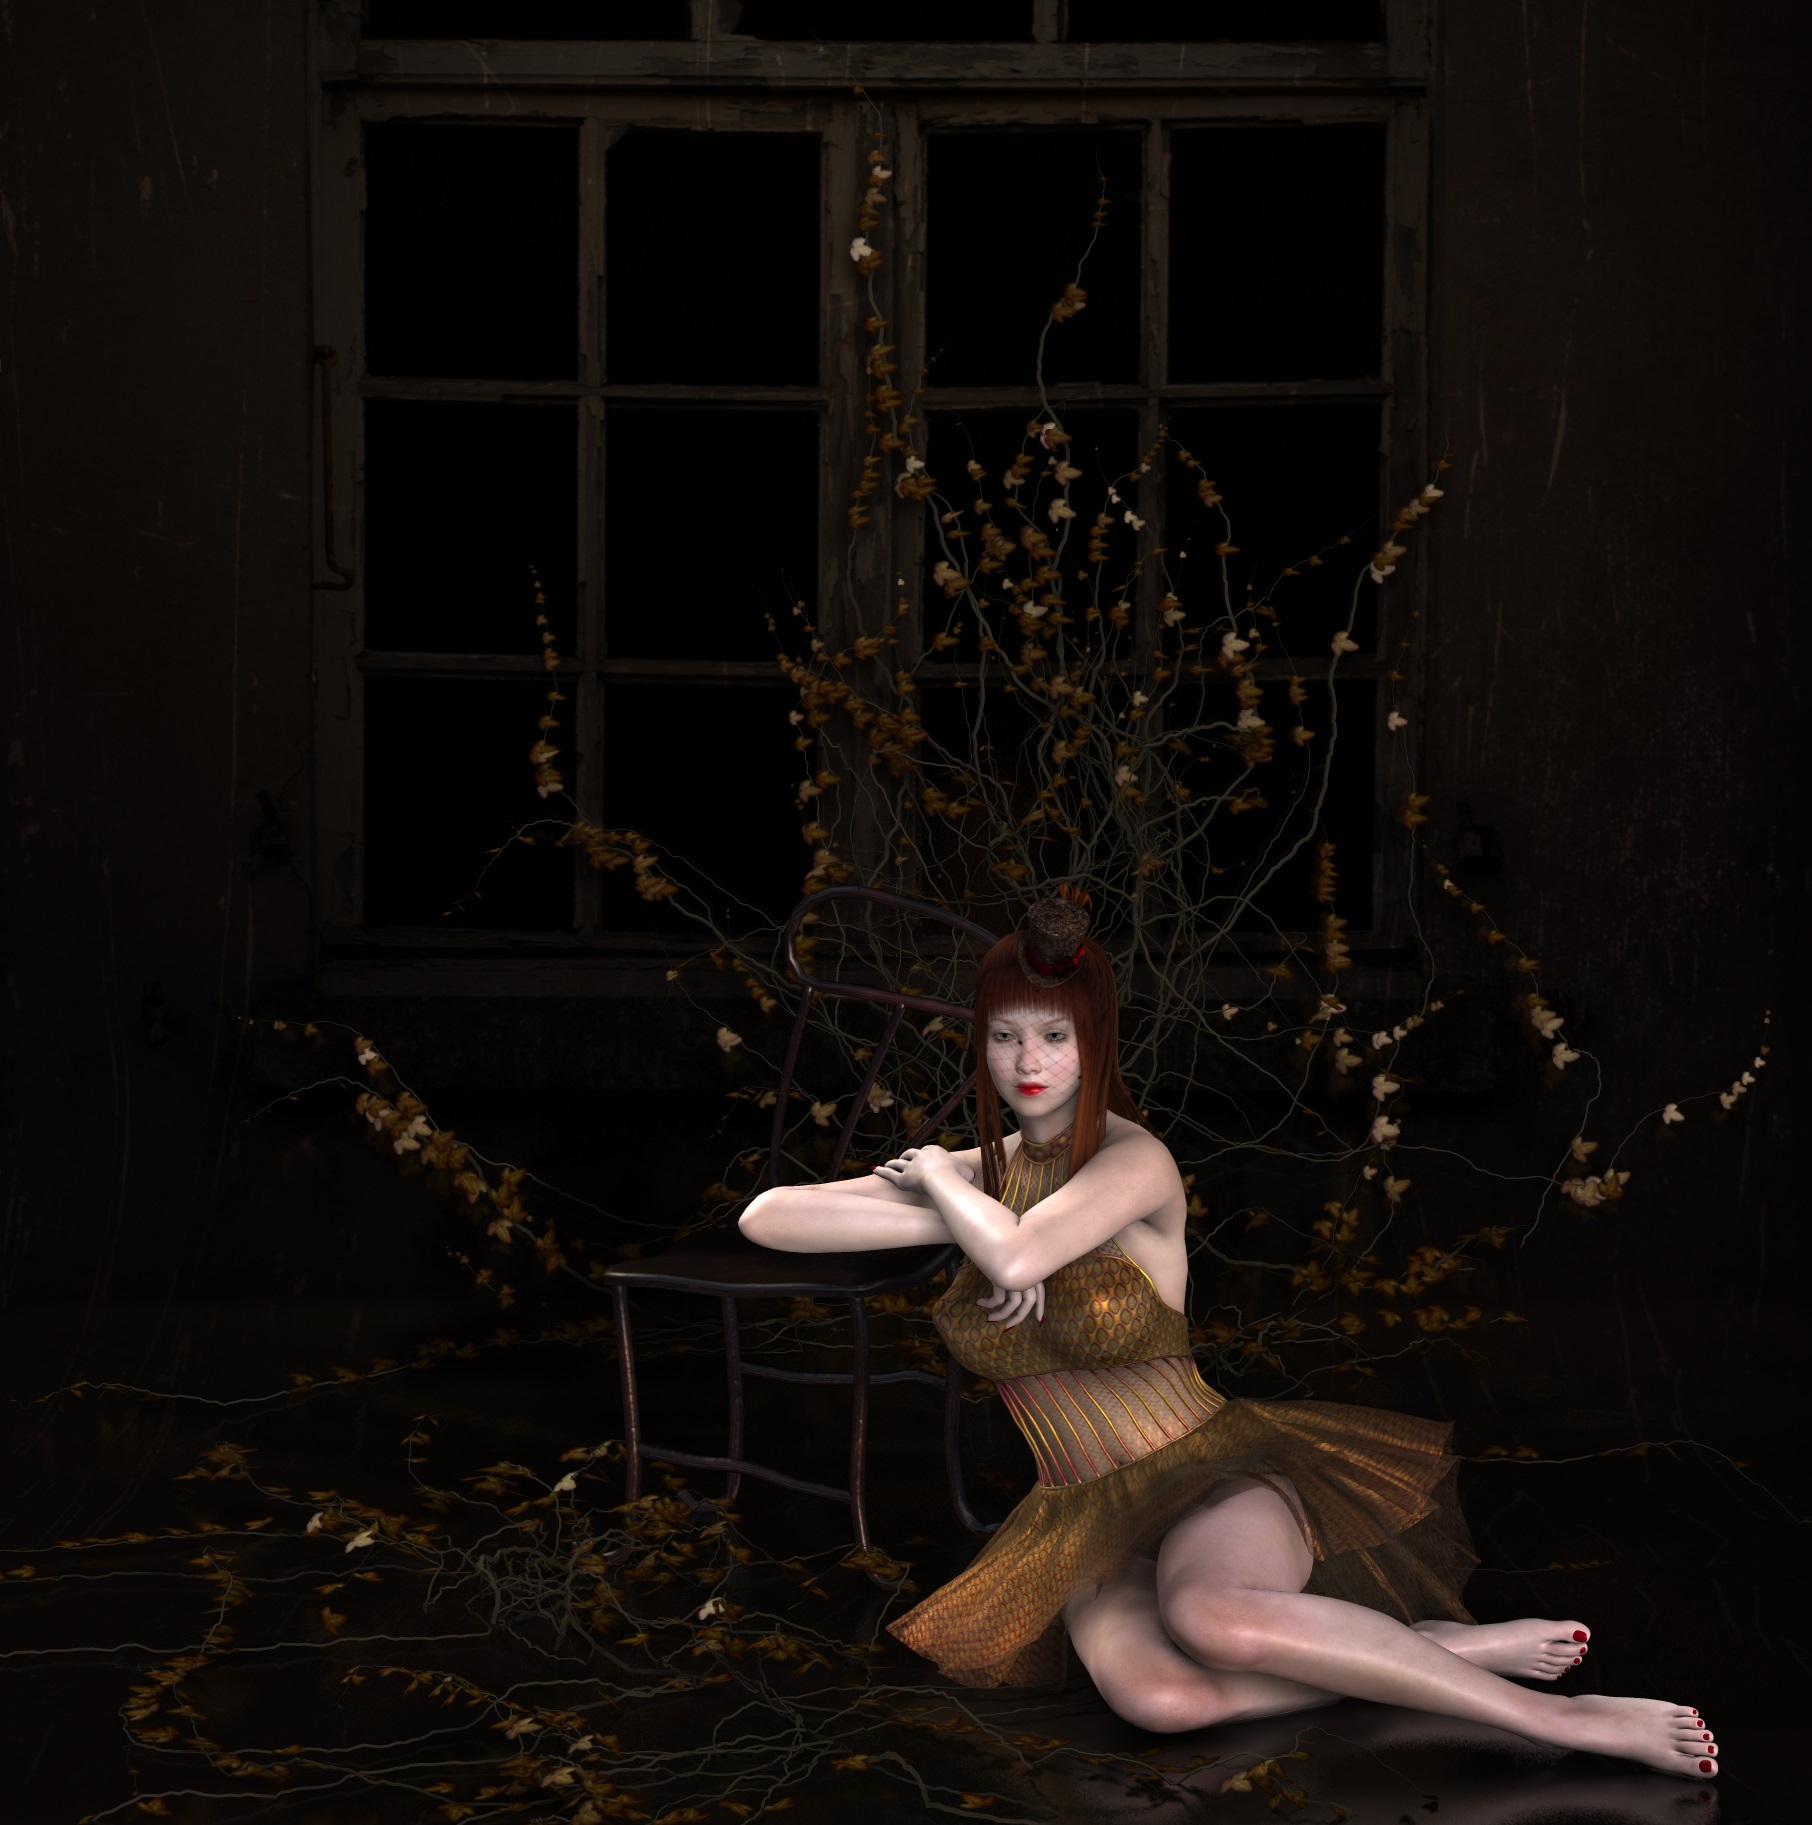 Autumn Leaves for Tempesta3d and Lory